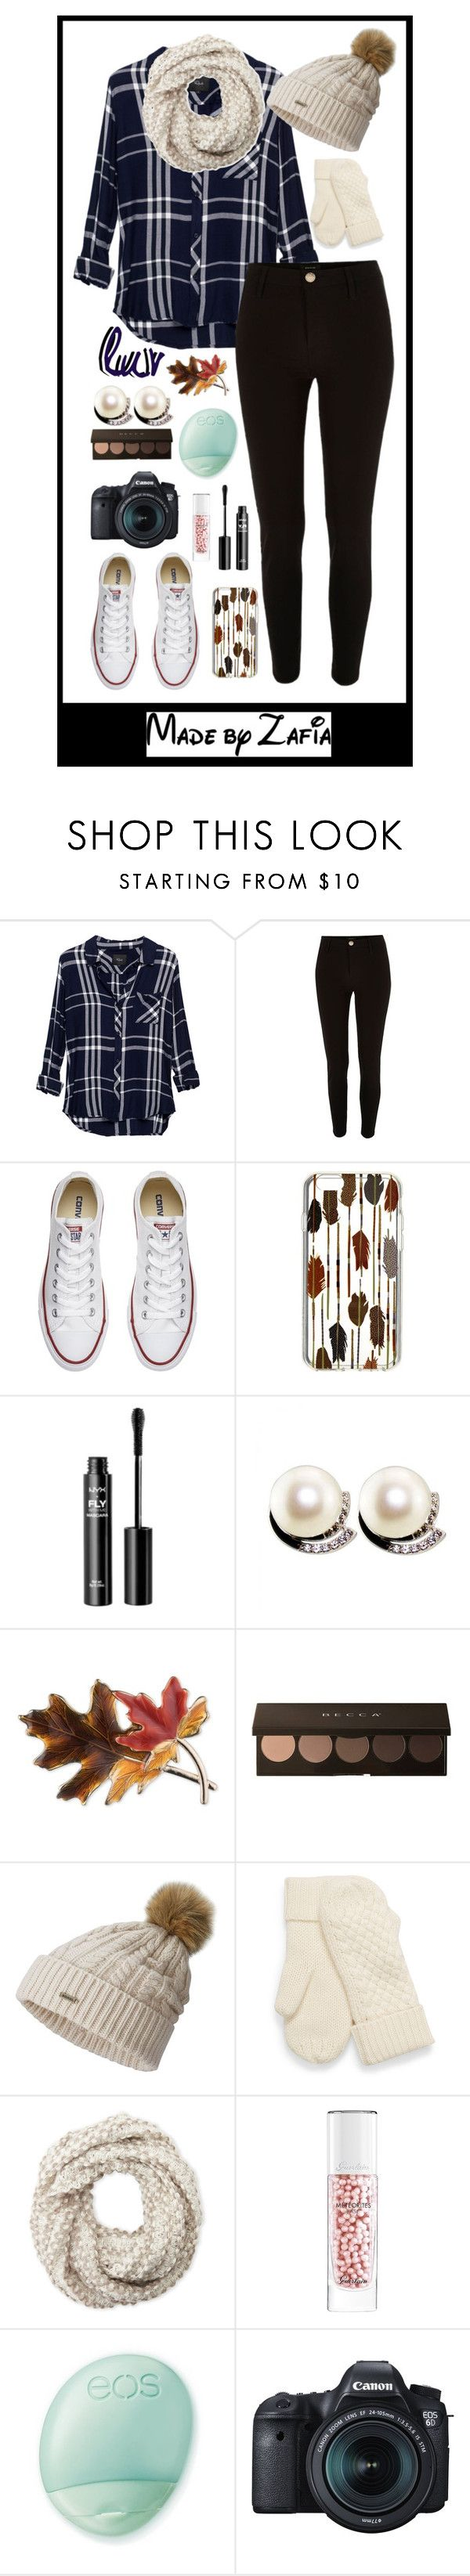 """""""✧,'-' Cause it's Friday night, you're not that type"""" by xo-zafia-xo ❤ liked on Polyvore featuring Rails, River Island, Converse, Vera Bradley, NYX, Anne Klein, SOREL, Cejon, Guerlain and Eos"""